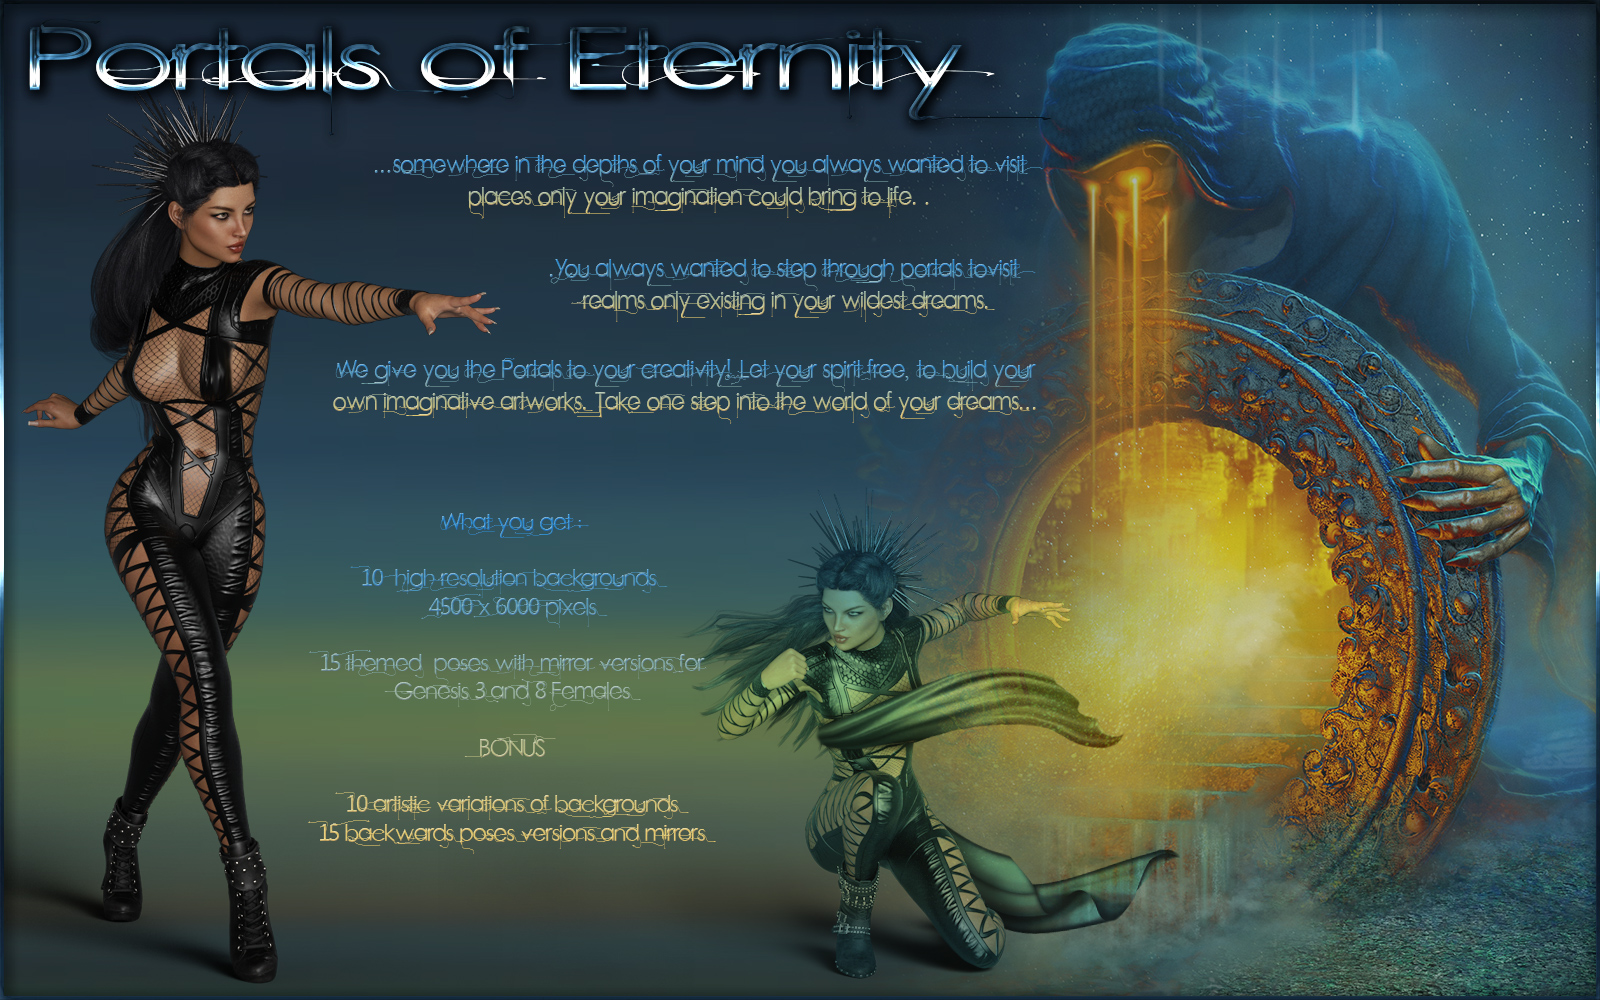 Portals of Eternity-Poses and Backgrounds for G3F and G8F by ilona